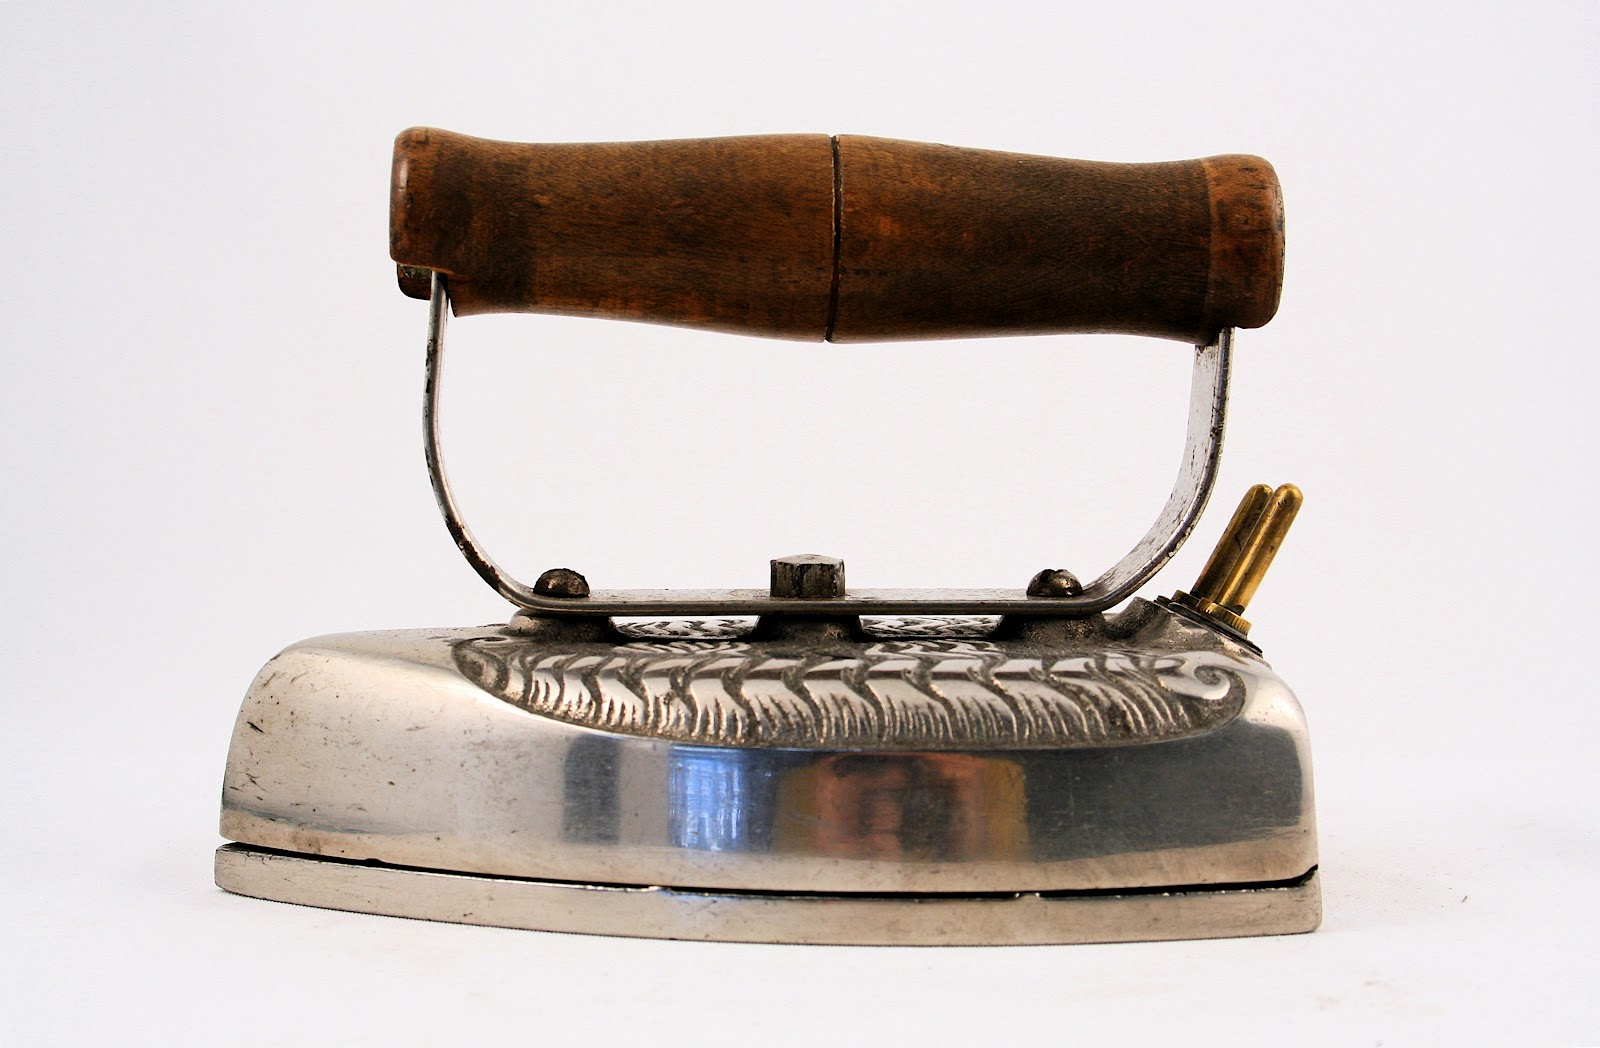 First Electric Steam Iron ~ Manufacturers of electric laundry irons in vintage